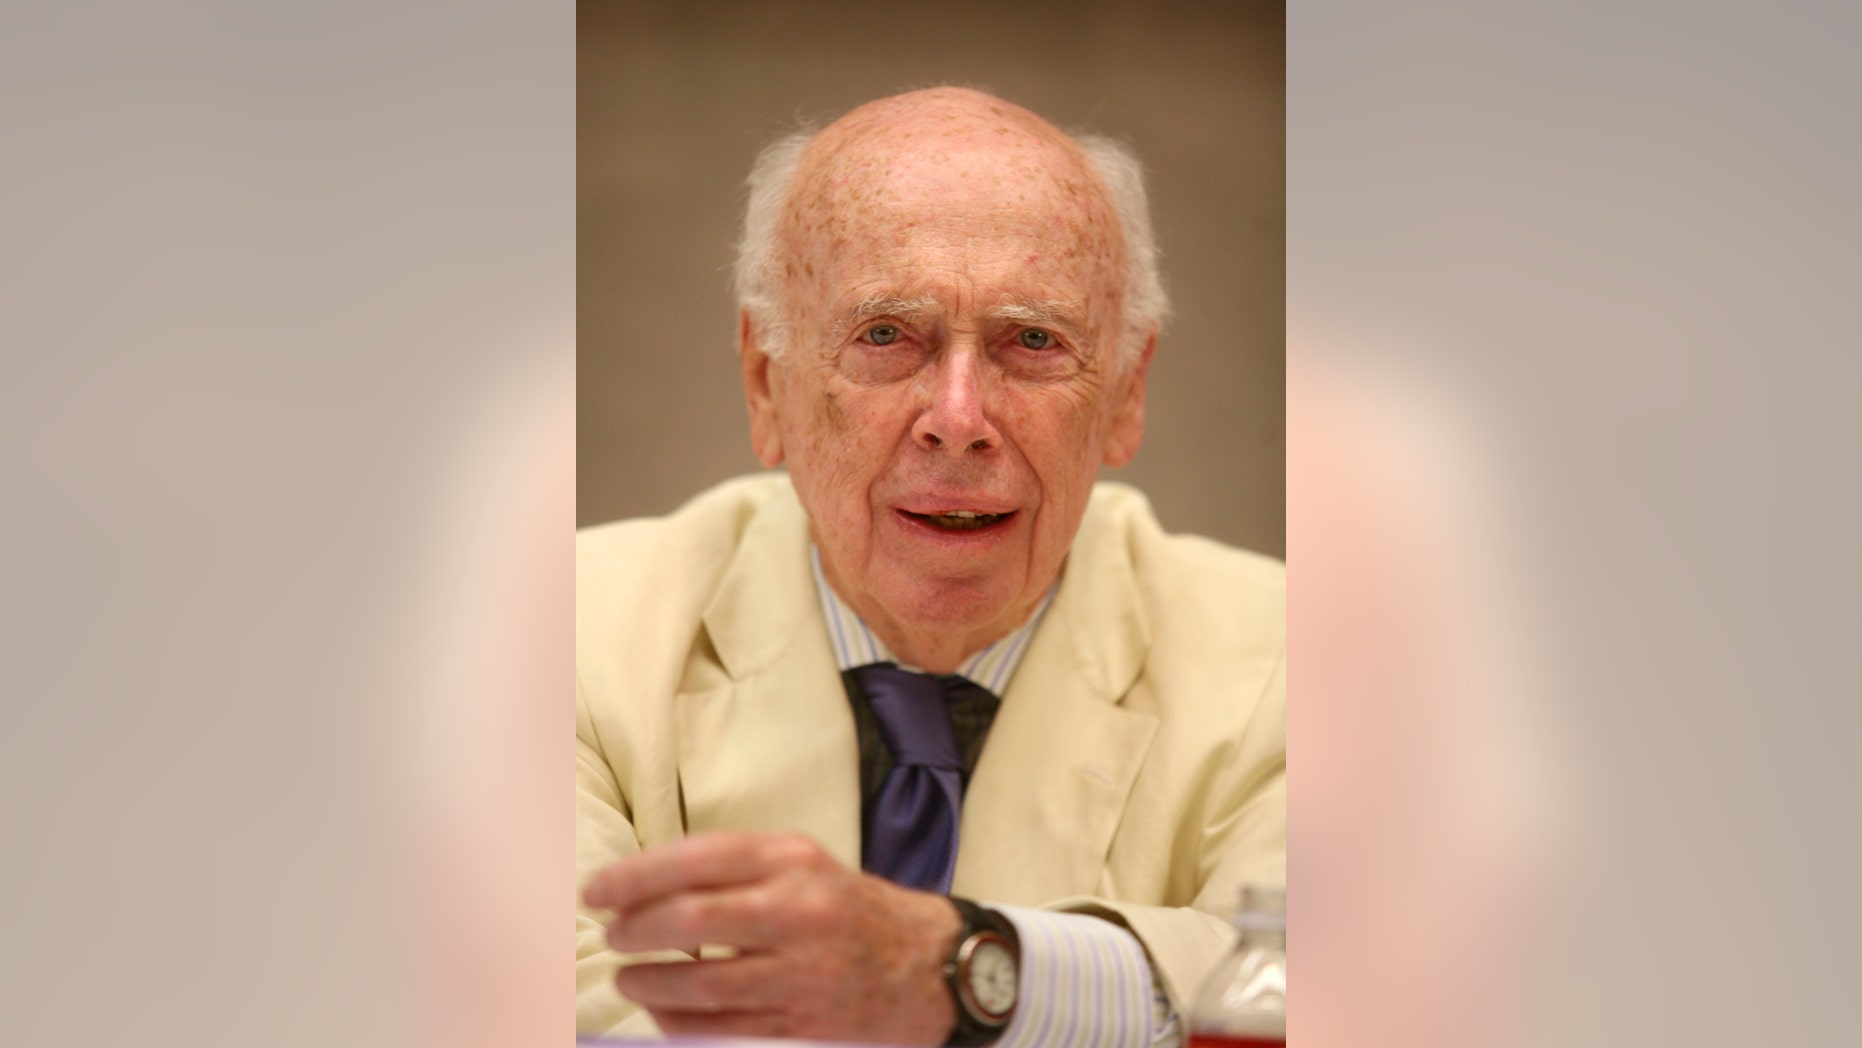 File photo of James Watson, co-discoverer of the DNA helix and father of the Human Genome Project.